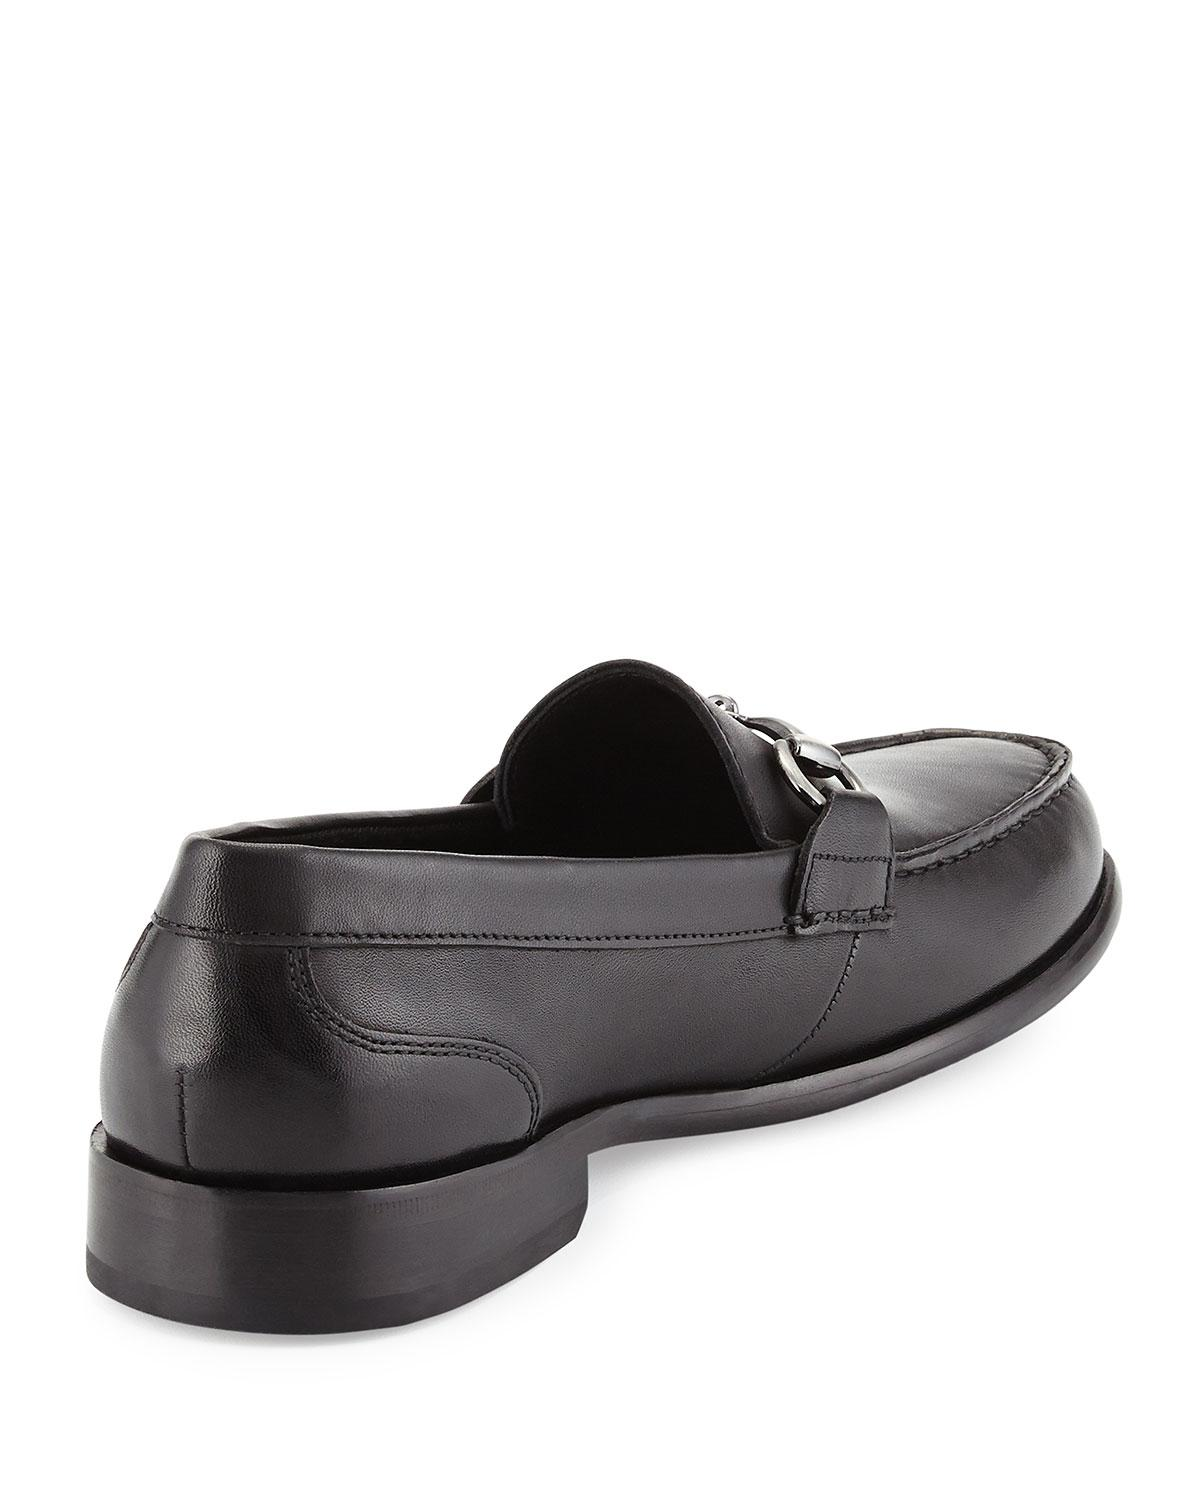 ff1ff09eb12 Lyst - Cole Haan Fairmont Horsebit Leather Loafer in Black for Men